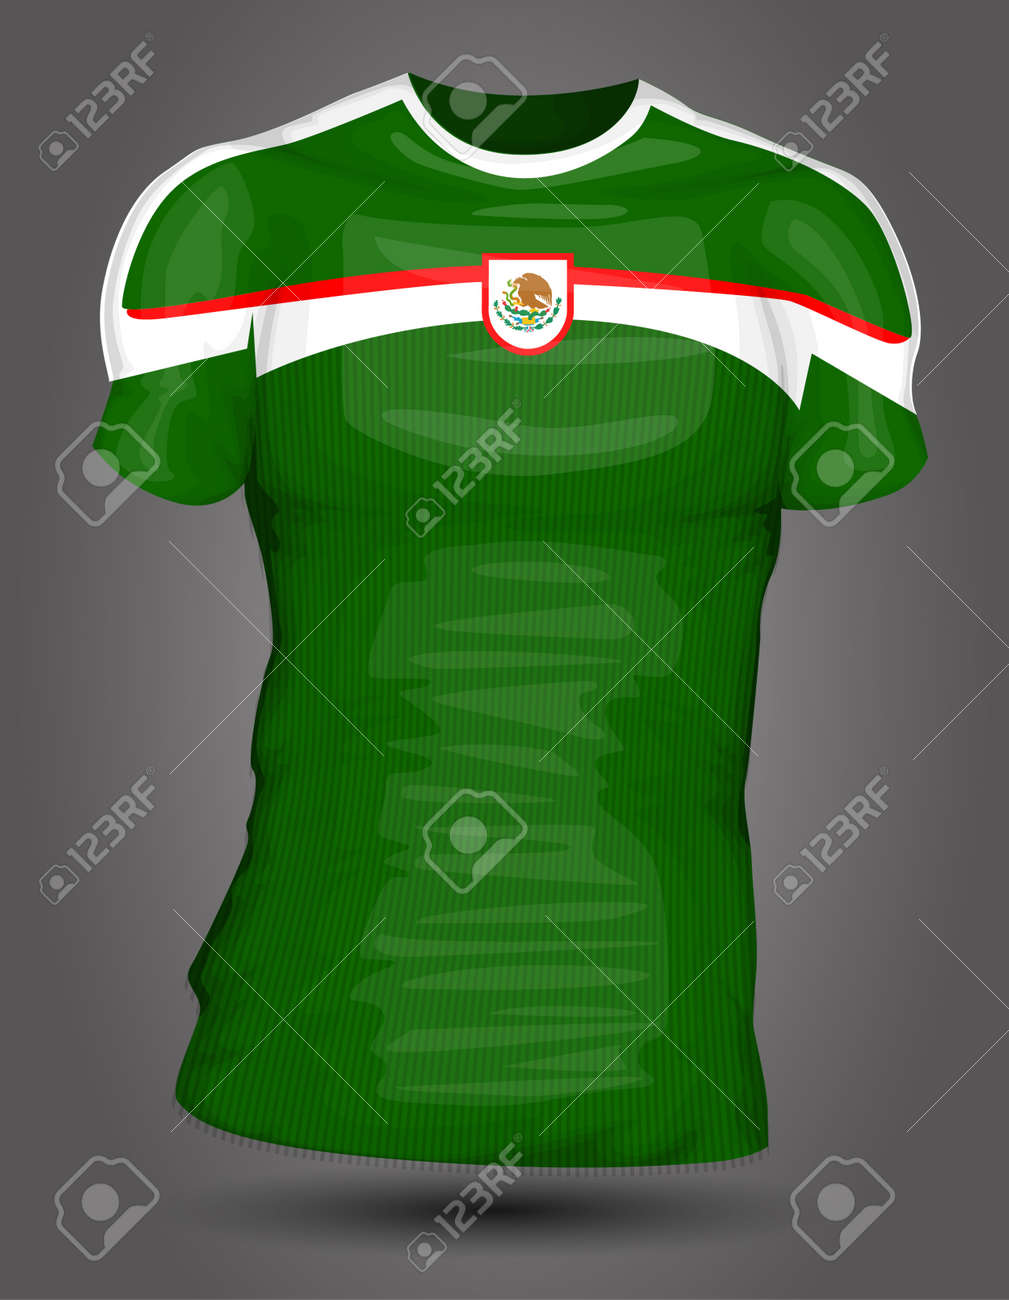 5bff0d54f Mexico soccer jersey Stock Vector - 27320500